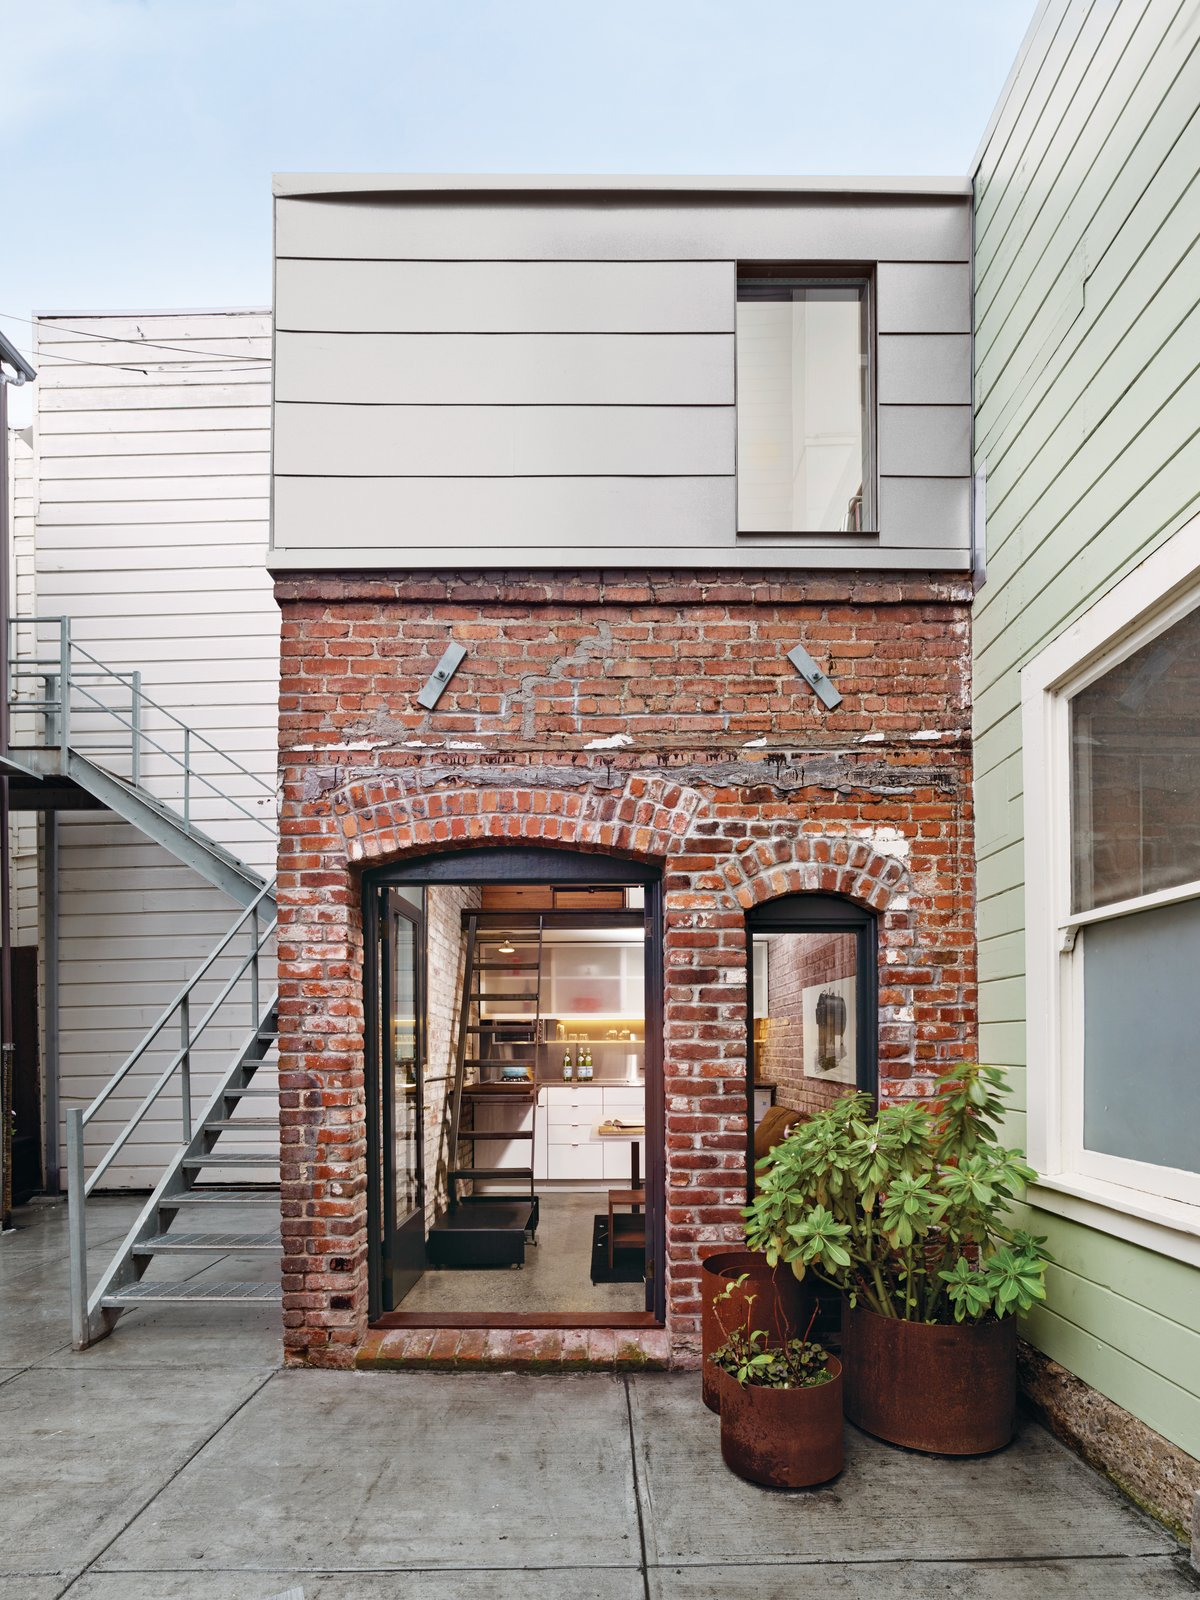 A COMPACT THREE-STORY BRICK LOFT IN SAN FRANCISCO  Making the most of vertical space unleashes the potential of a petite San Francisco project.  Photo by Cesar Rubio. Tagged: Concrete Patio, Porch, Deck, Small Patio, Porch, Deck, Back Yard, Exterior, House, and Brick Siding Material.  Brick Houses from Around the World  by Matthew Keeshin from A Compact Three-Story Brick Loft in San Francisco